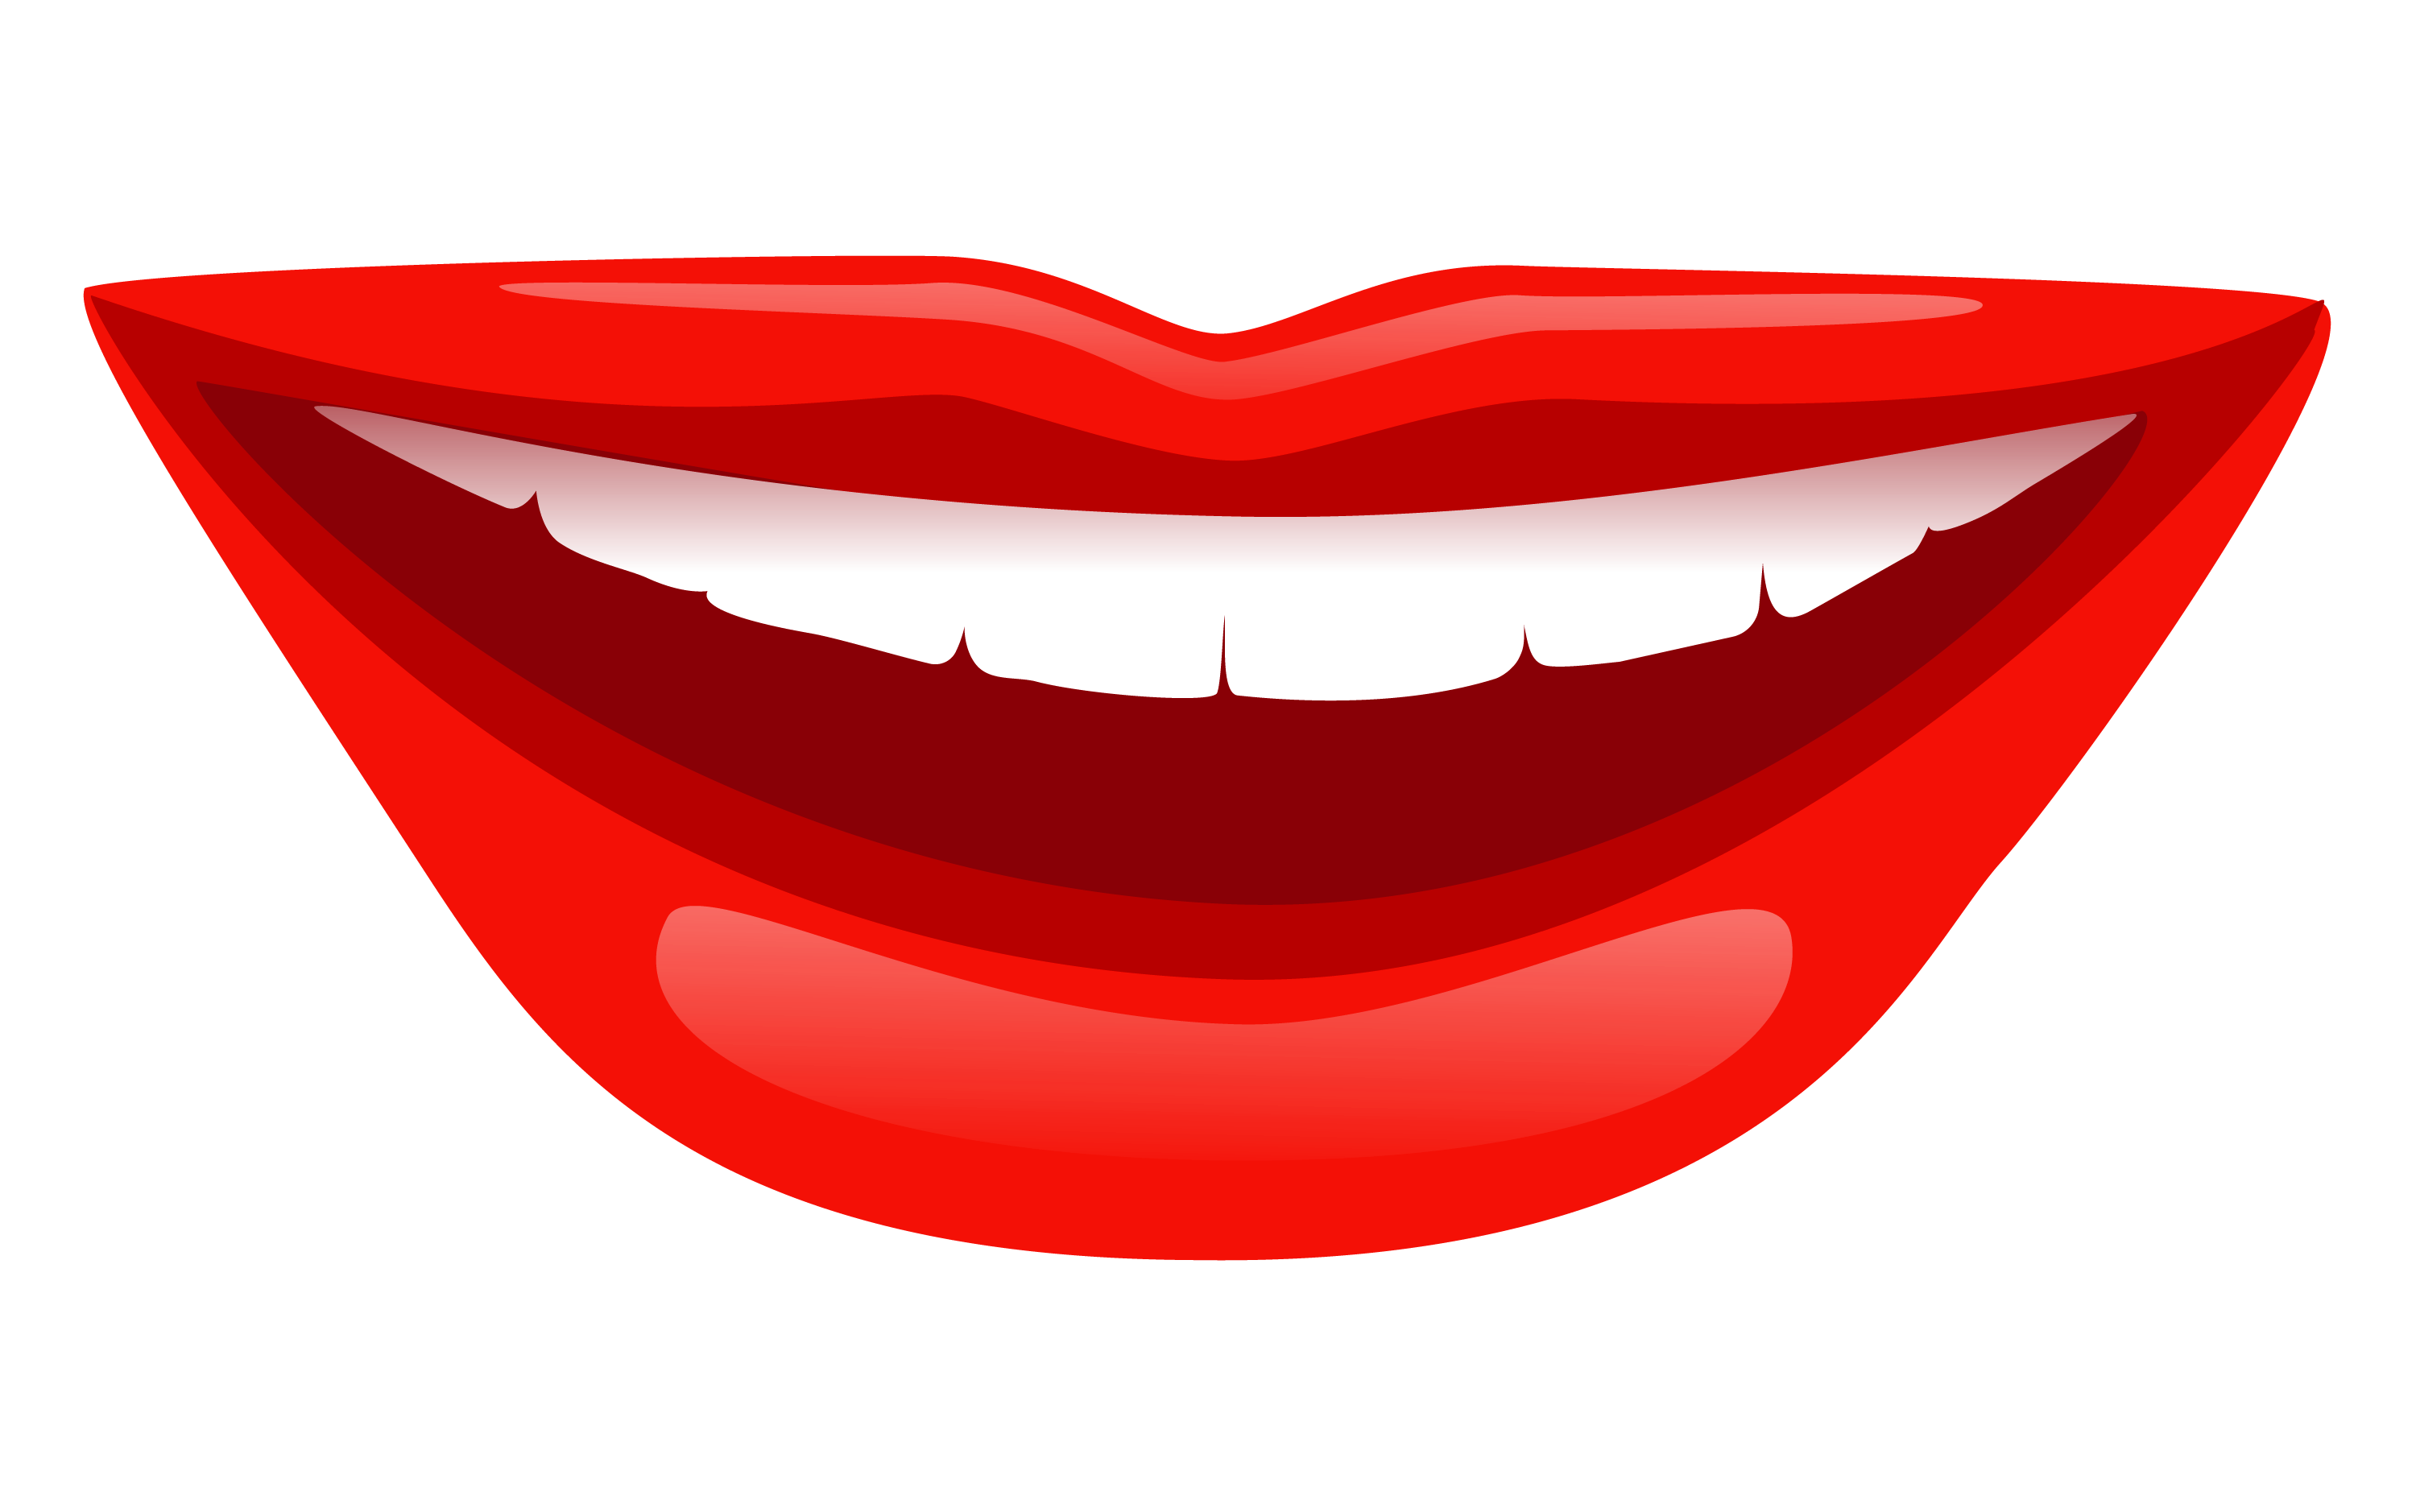 Cartoon Smile Png - Smiling Lips PNG HD Transparent Smiling Lips HD.PNG Images. | PlusPNG